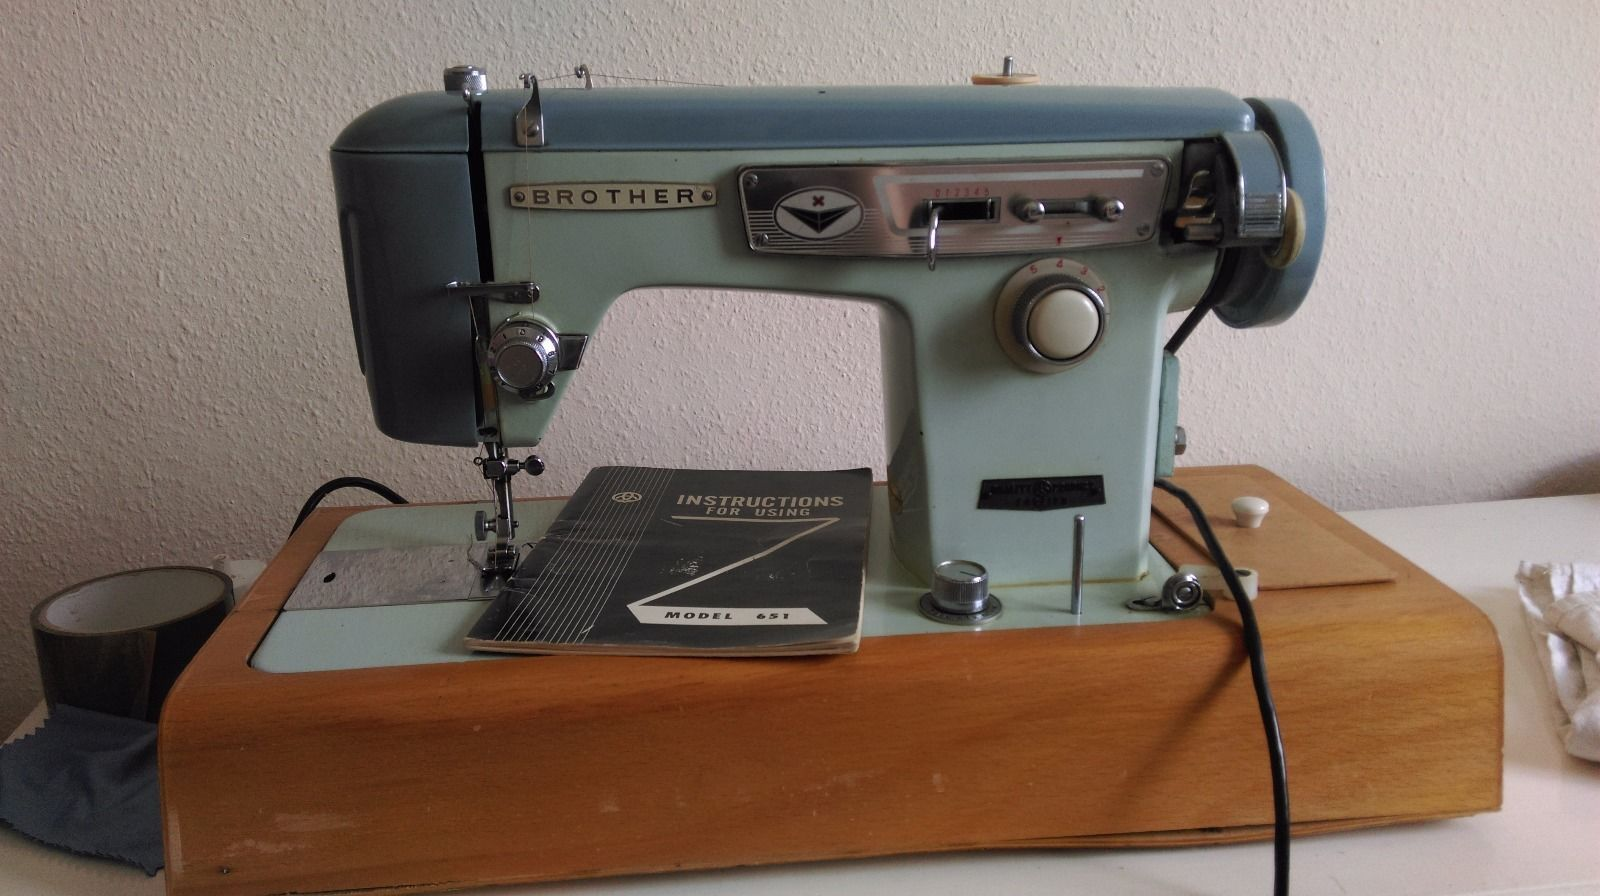 Vintage Brother Electric Sewing Machine | eBay | Sewing ...